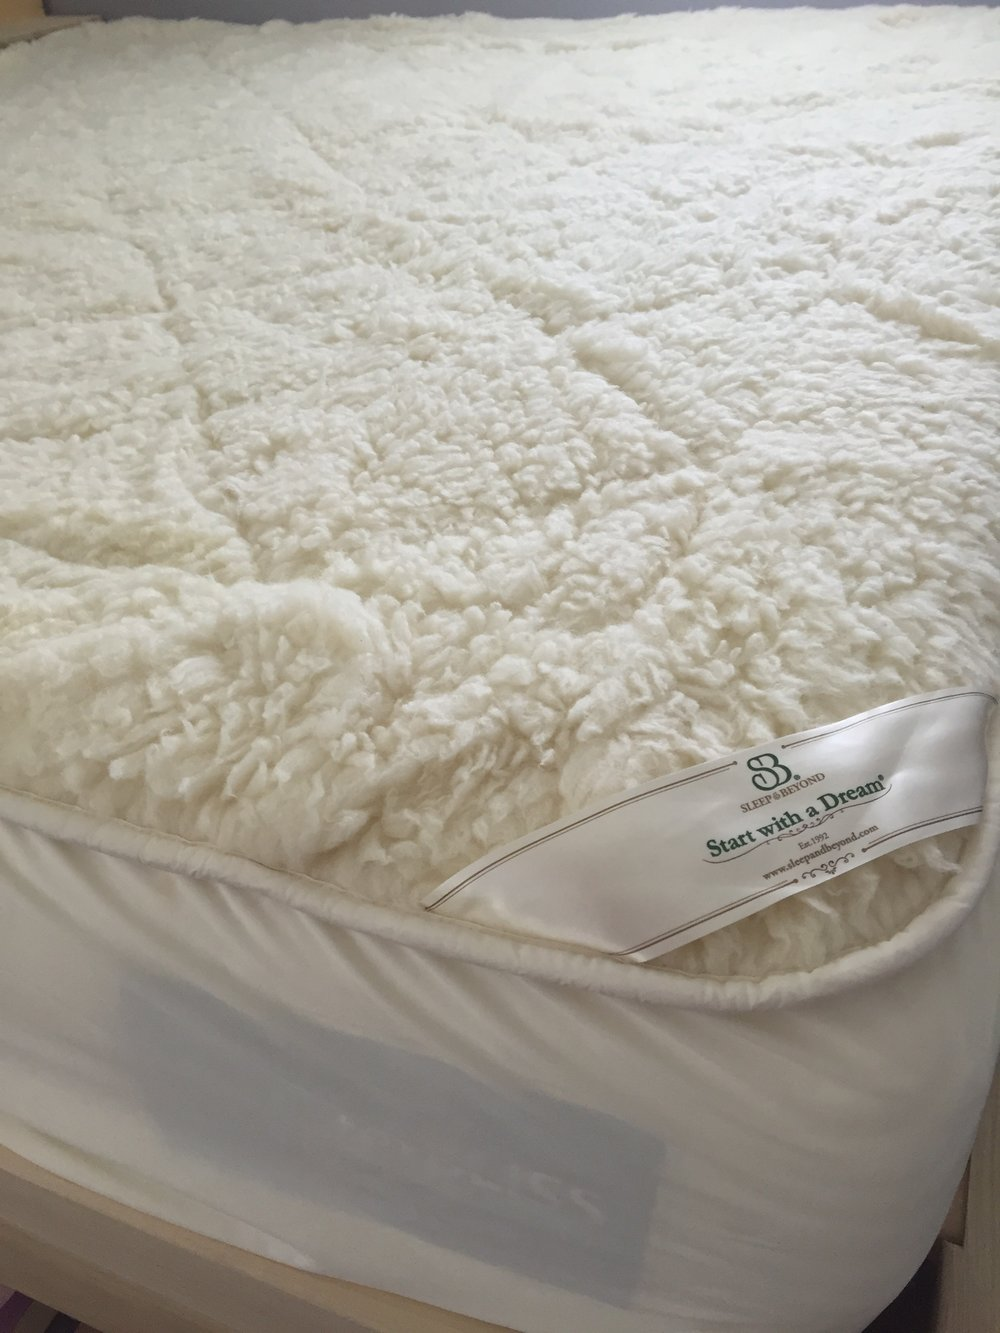 Wool Mattress Pad Reviews Personal Experience By Sarah Sleep Beyond